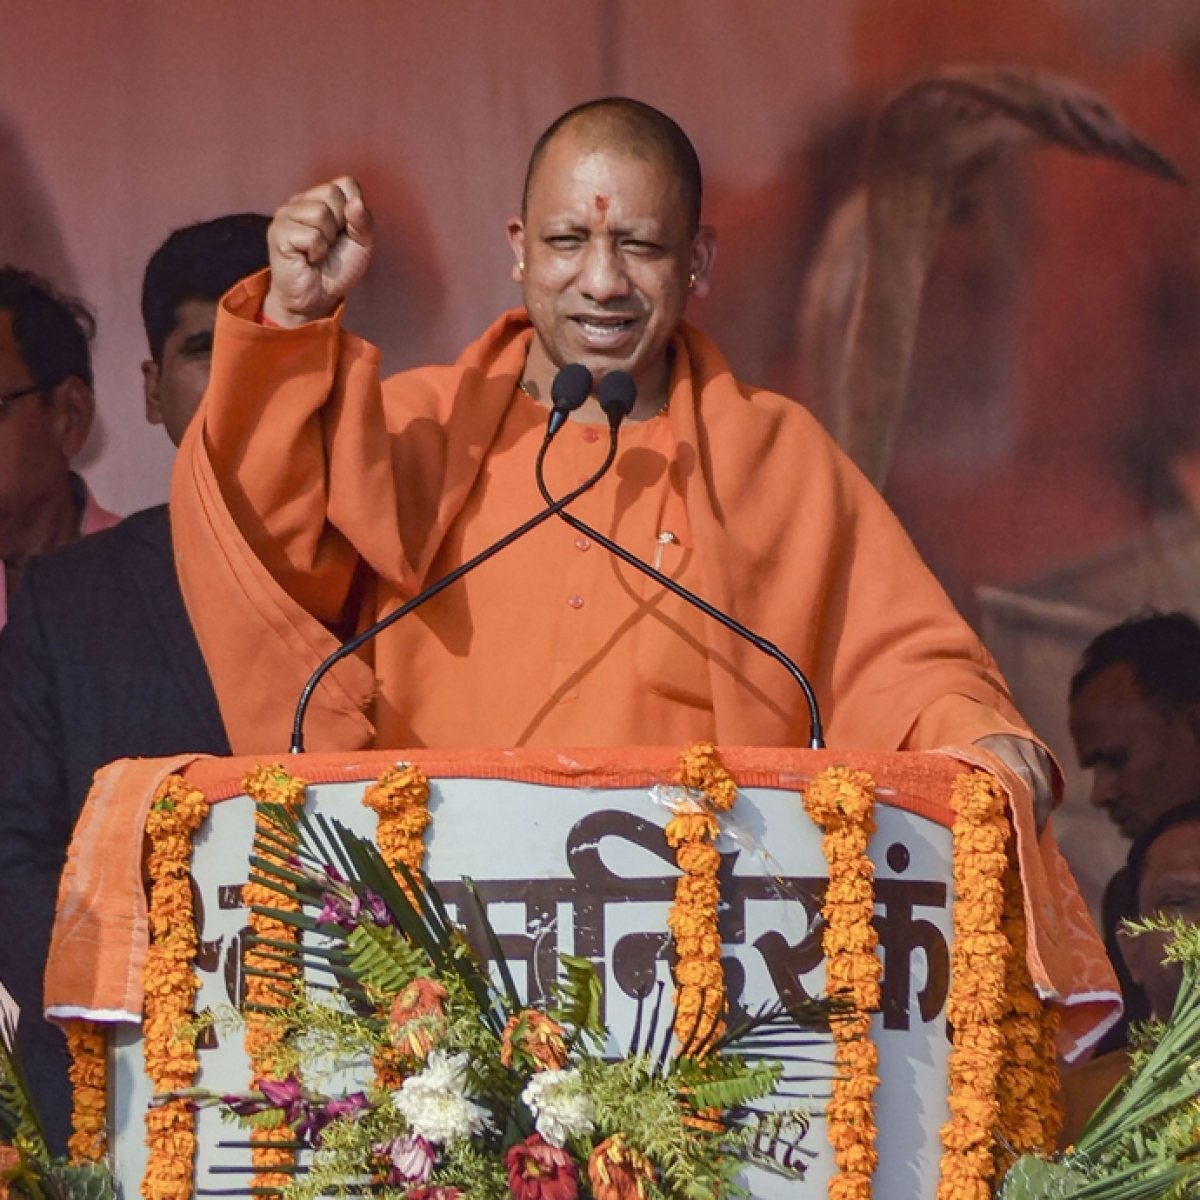 Traditional entrepreneurs working to make Uttar Pradesh 1 trillion dollar economy: Yogi Adityanath